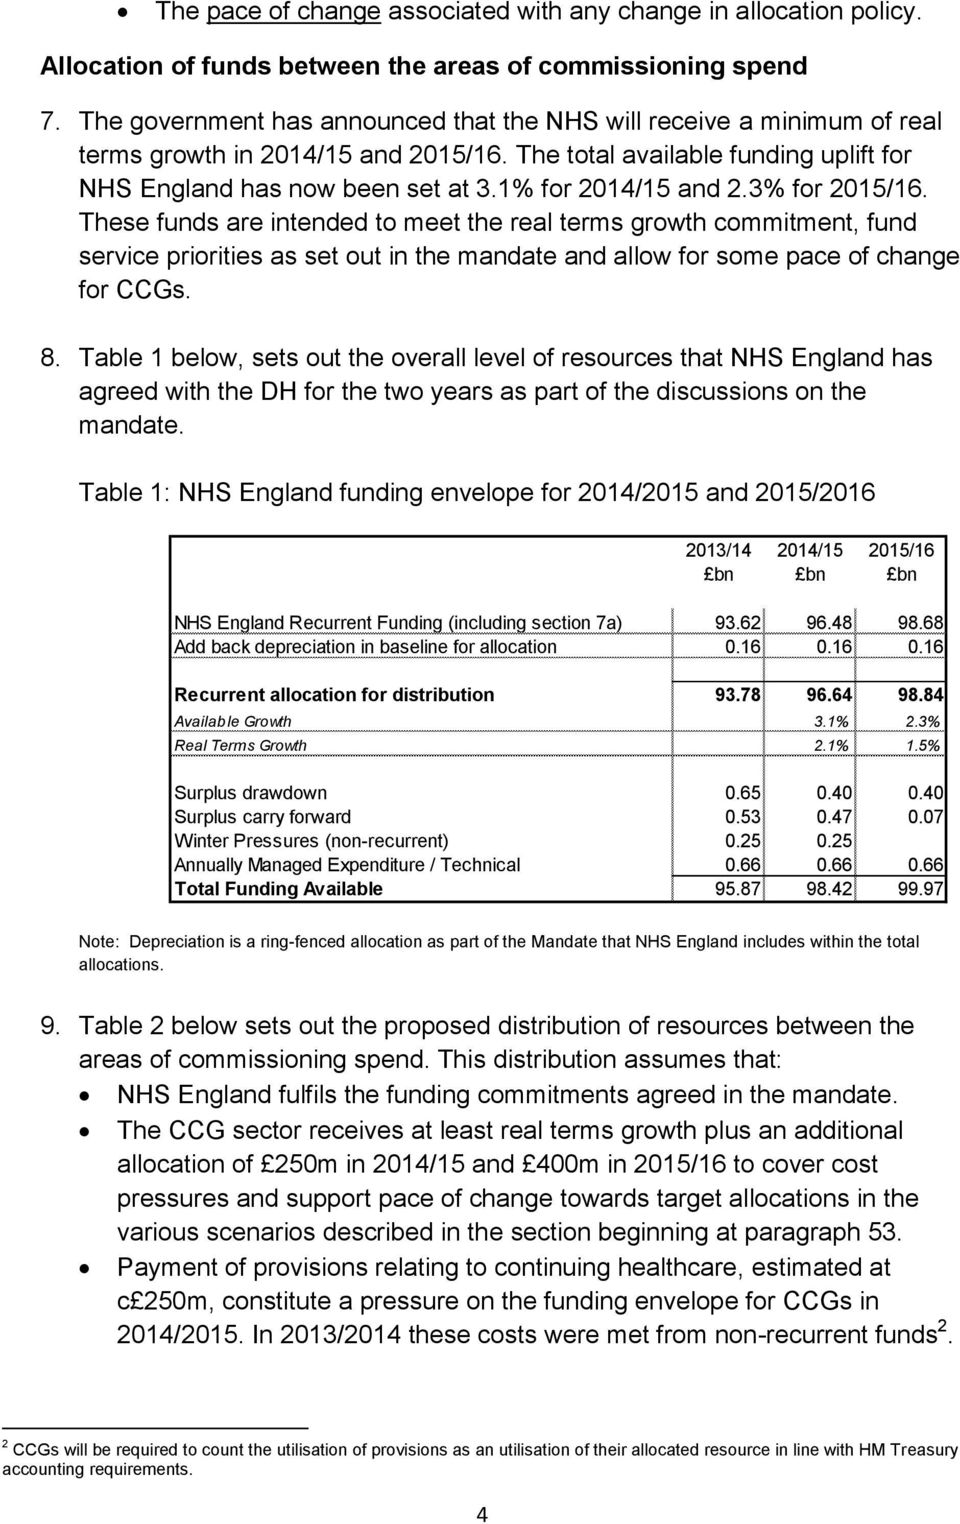 1% for 2014/15 and 2.3% for 2015/16. These funds are intended to meet the real terms growth commitment, fund service priorities as set out in the mandate and allow for some pace of change for CCGs. 8.